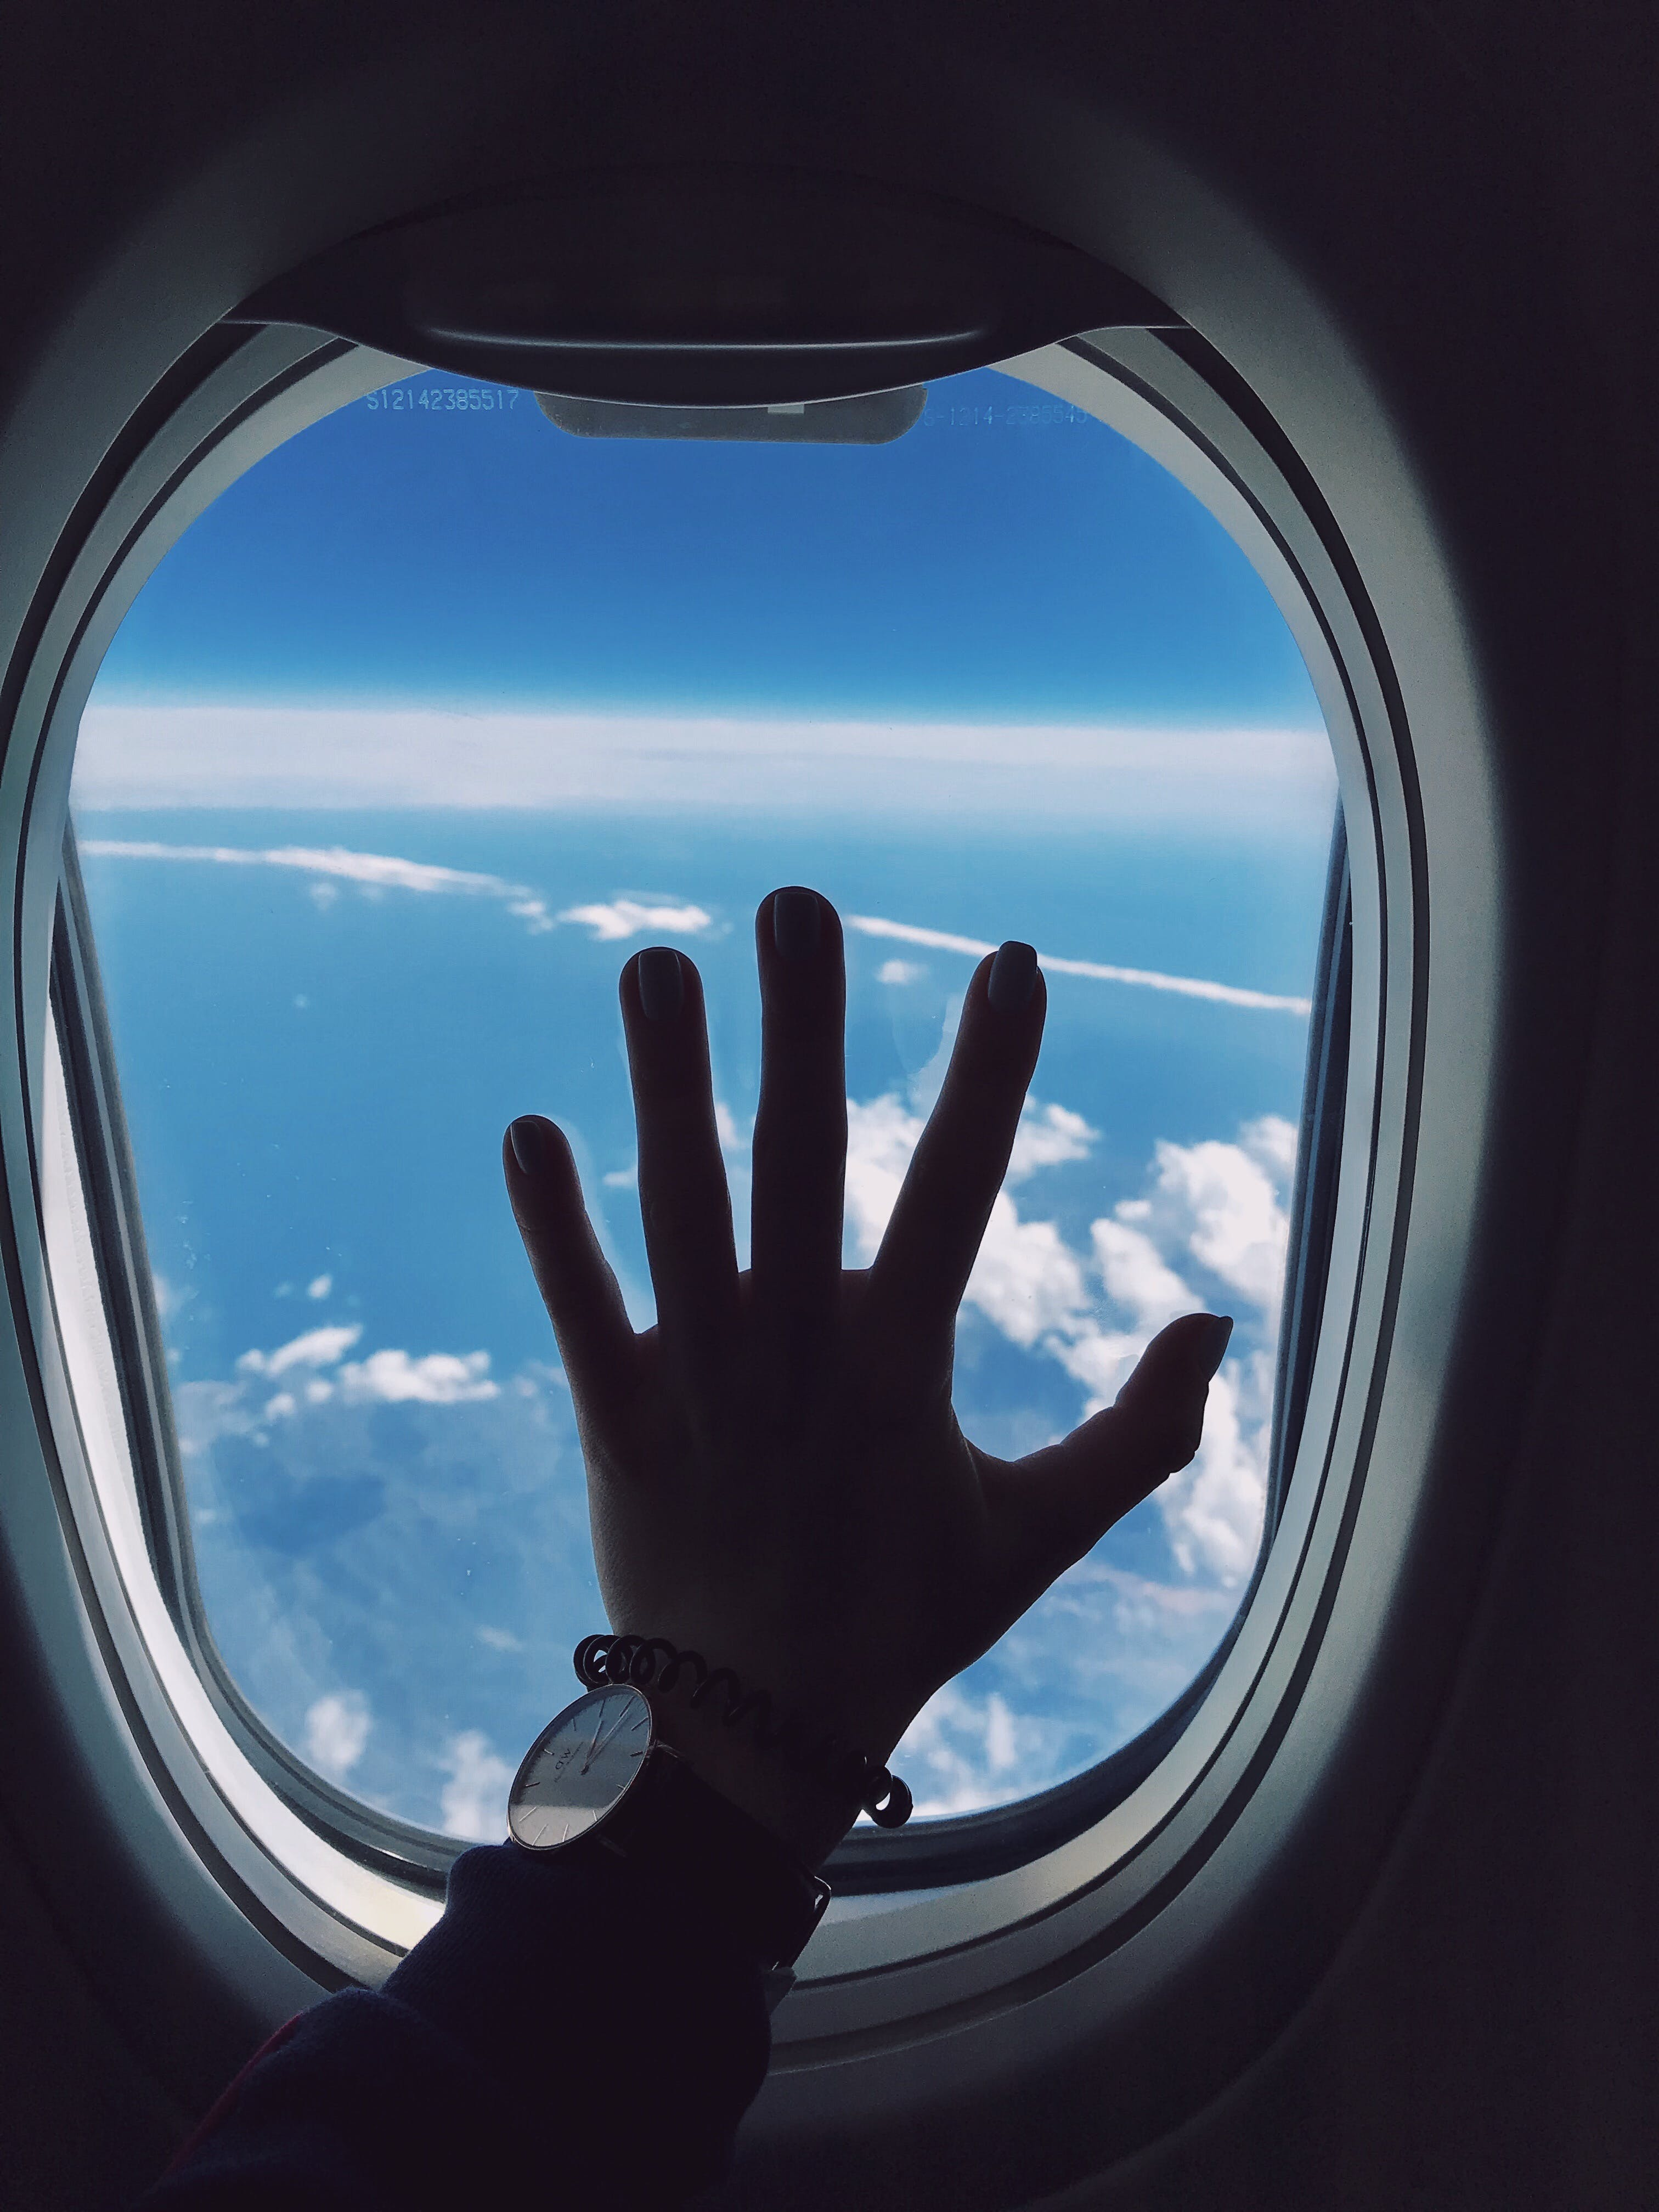 Photography of Person's Left Hand Touching an Airplane's Window